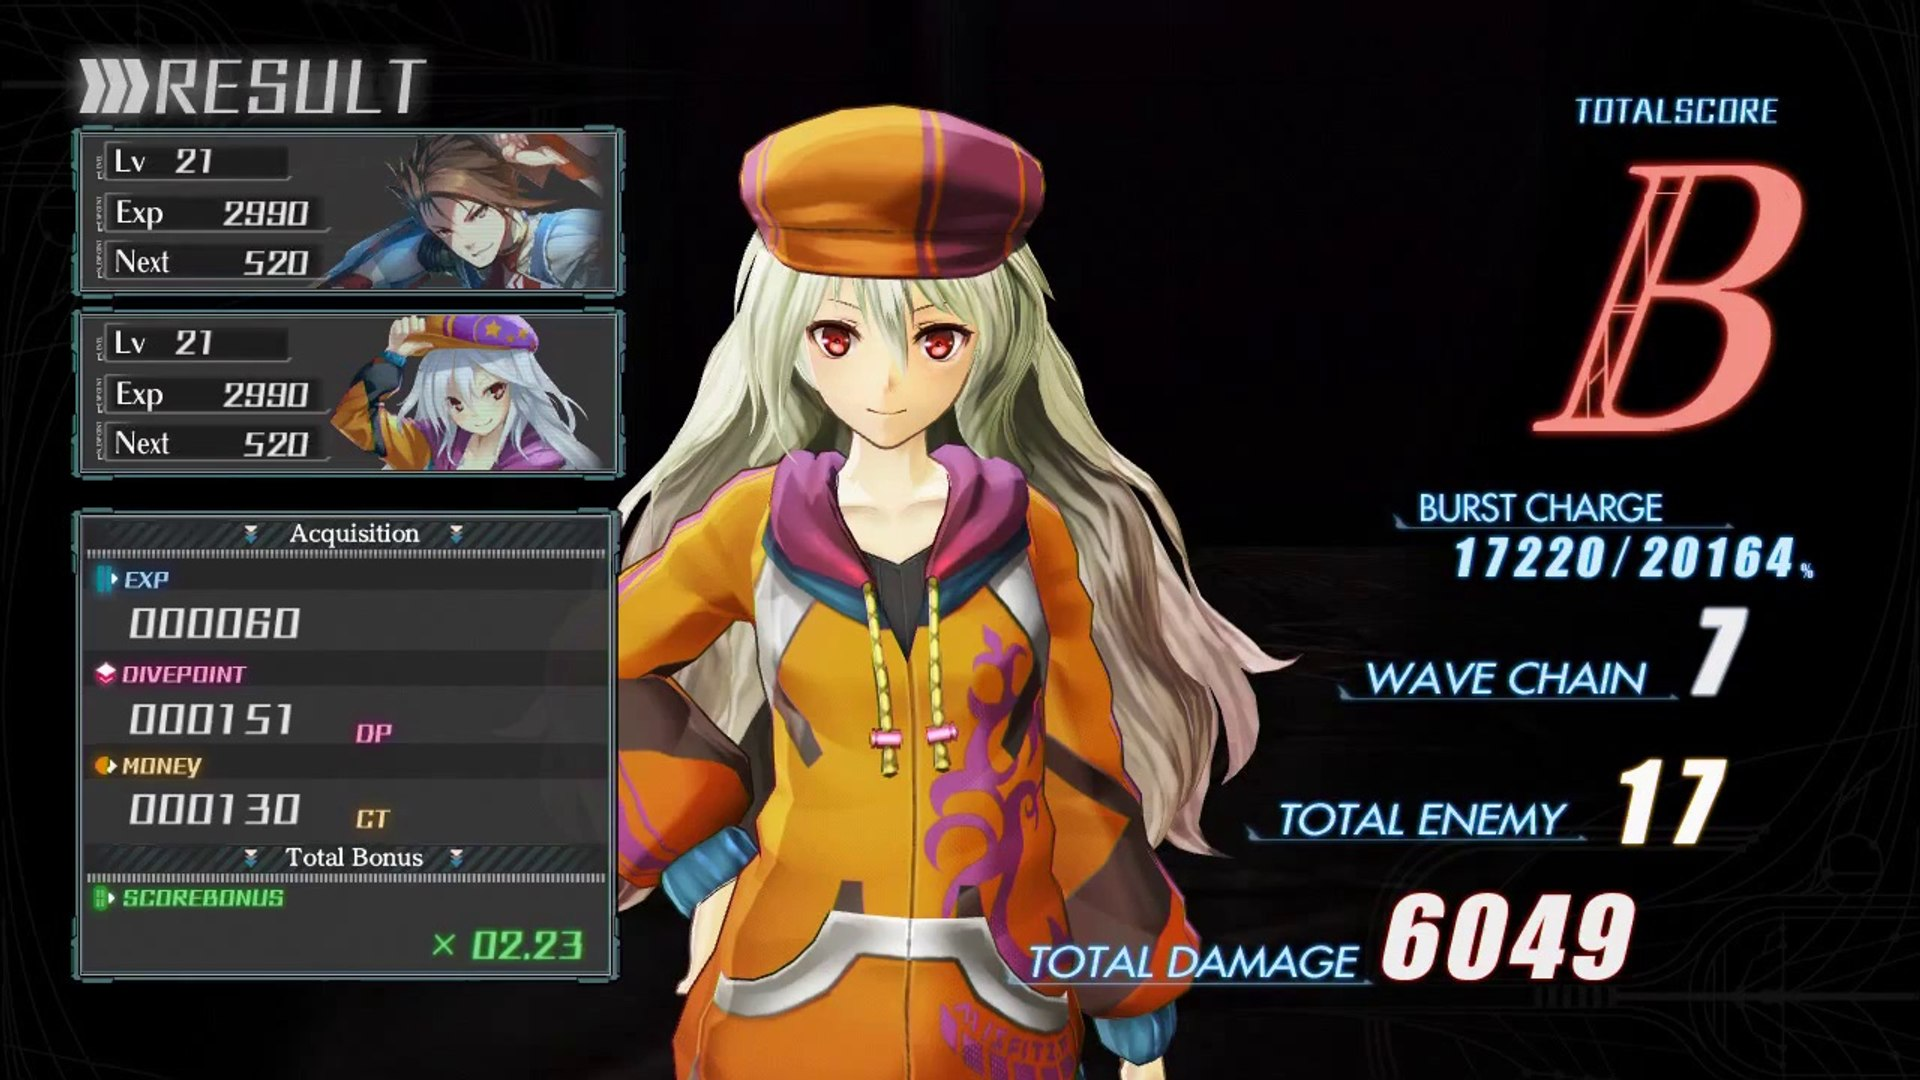 Ar Nosurge Ode To An Unborn Star Song Video Dailymotion Images, Photos, Reviews